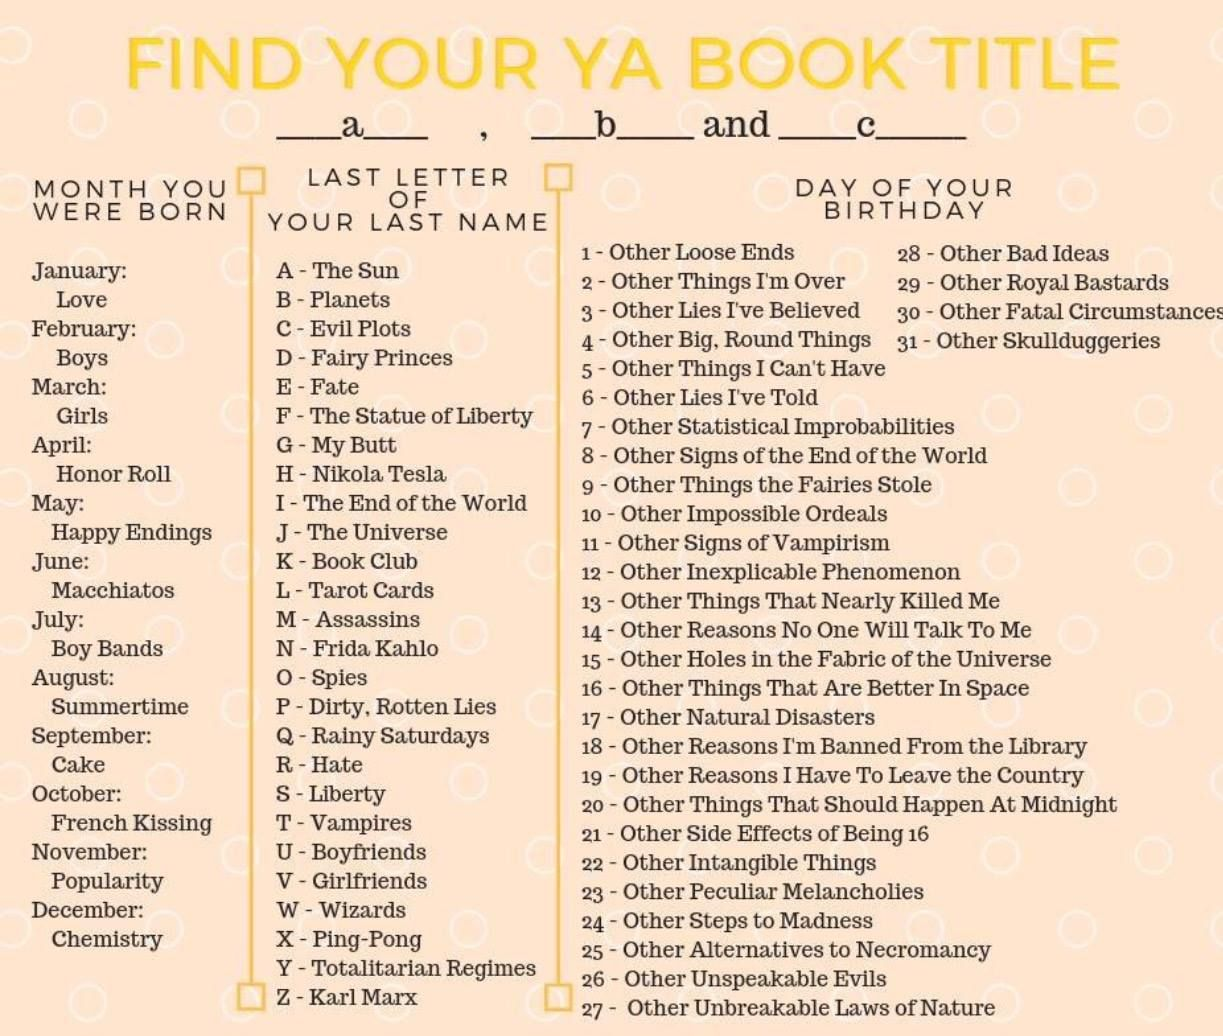 Find Your Ya Book Title Month You Were Born Last Letter Of Your Last Name And Day Of Your Birthday Daily Writing Prompts Book Writing Tips Writing A Book